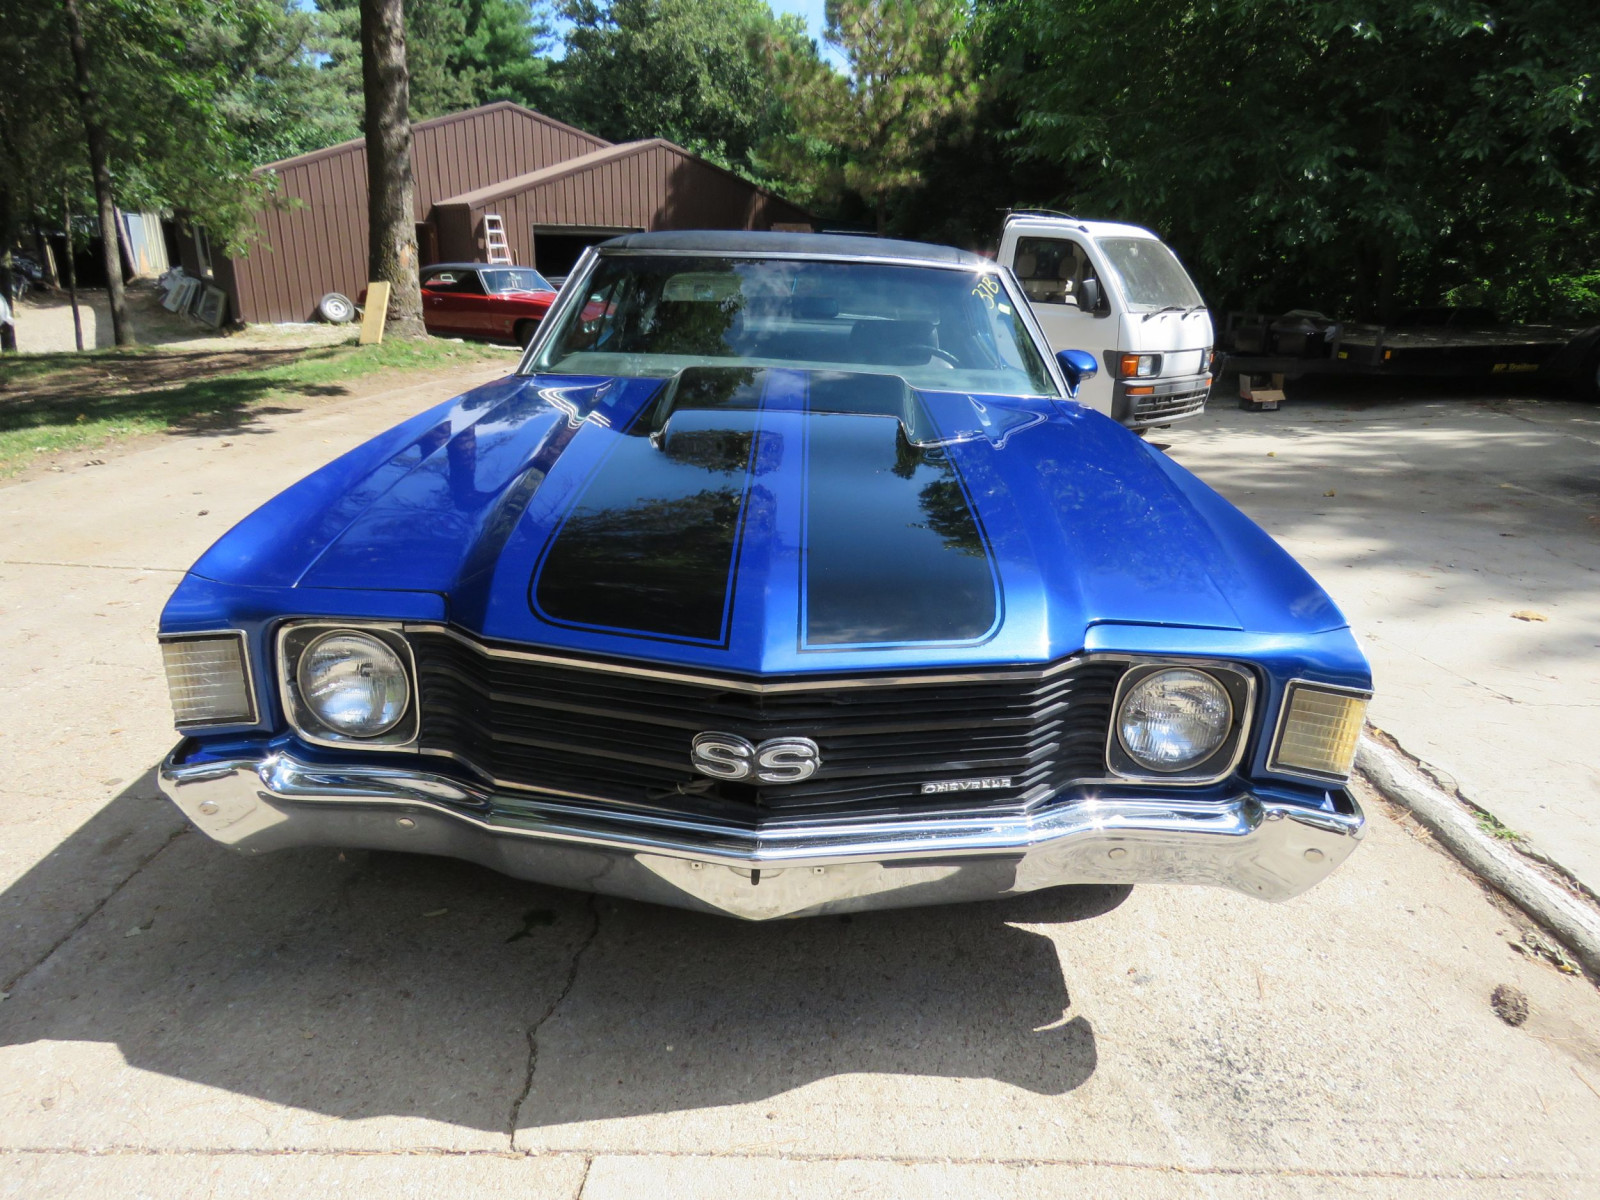 1972 Chevrolet Chevelle SS 2dr HT - Image 2